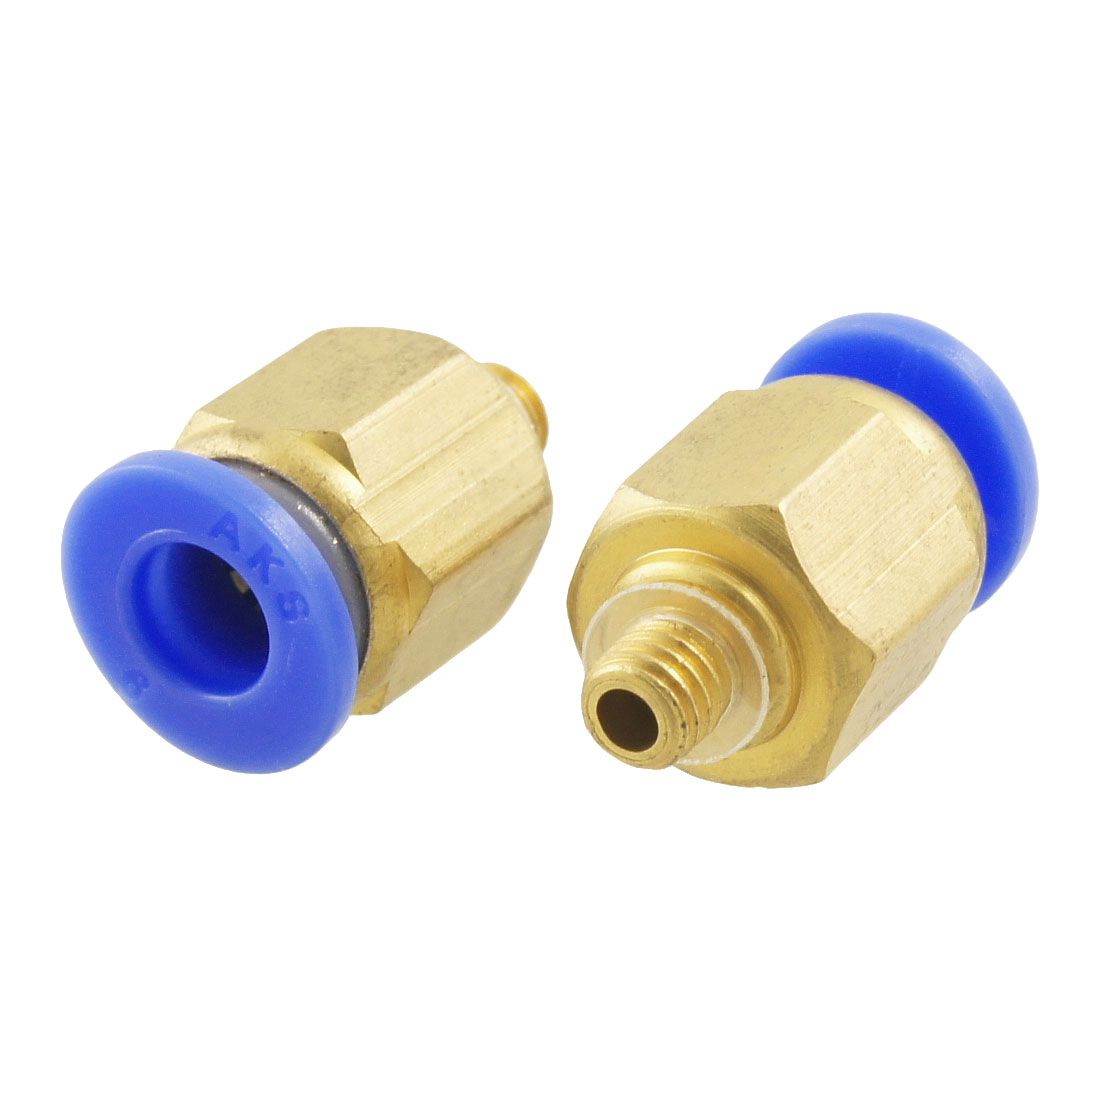 Unique Bargains 2pcs Male Thread 6mm x 4.8mm Quick Adapter Pneumatic Fittings